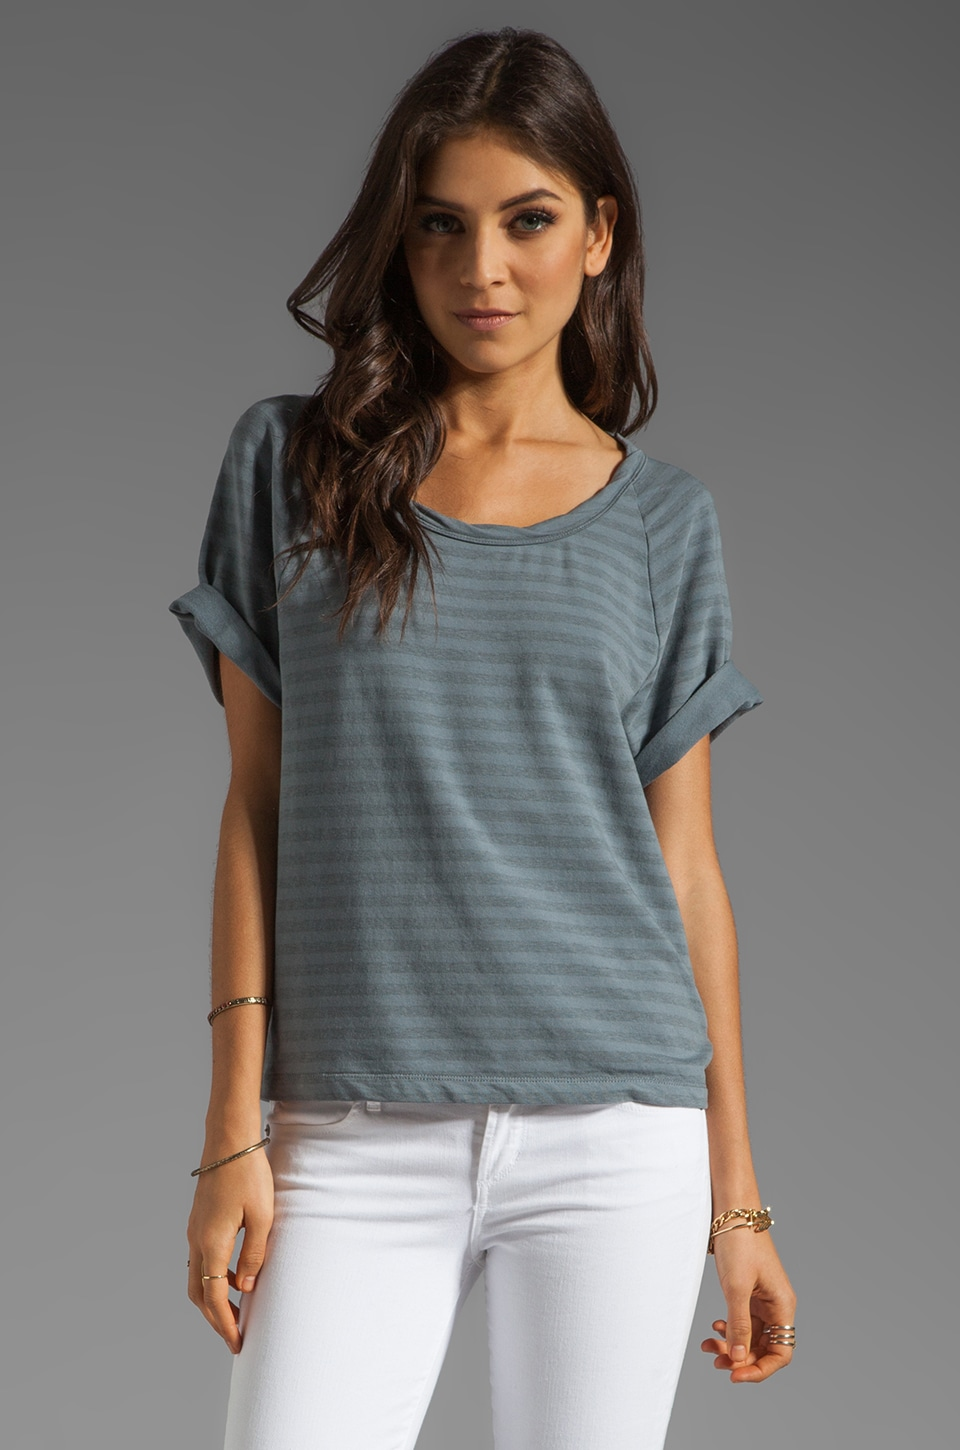 James Perse Short Sleeve Dolman Sweatshirt in Heather Grey/Tempest